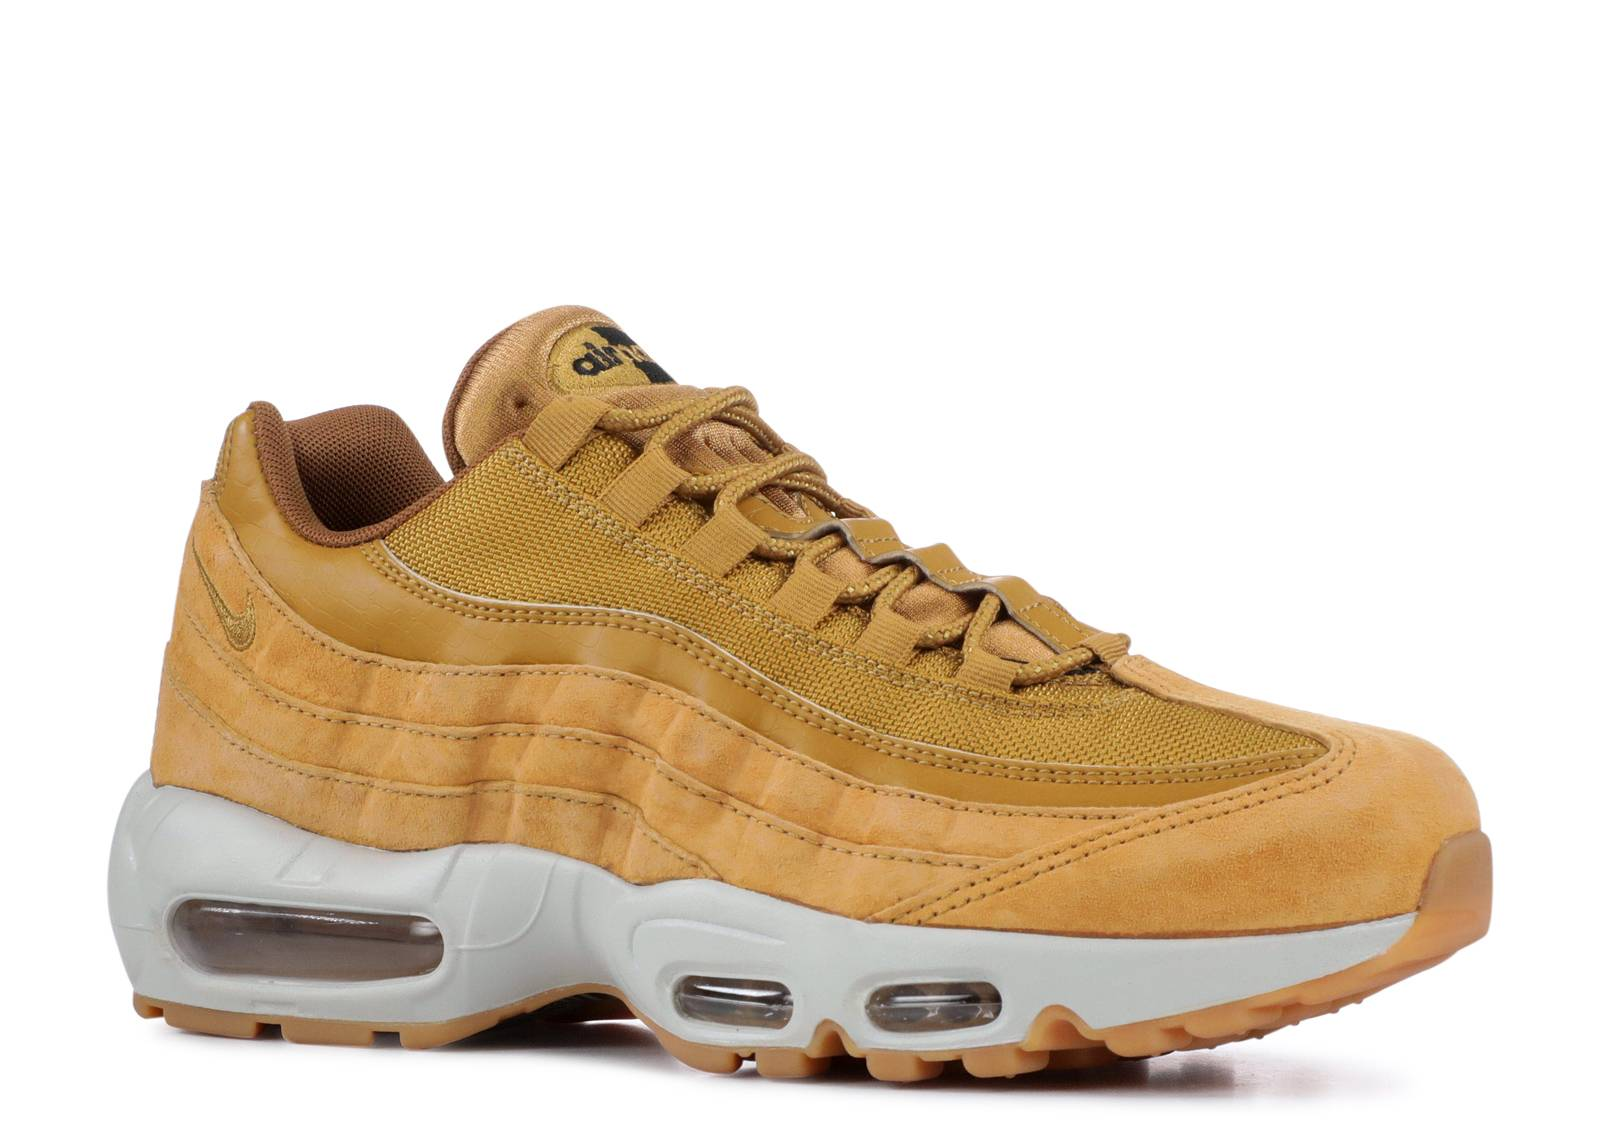 Details about NIKE AIR MAX 95 SE WHEAT PACK AJ2018 700 MEN'S TRAINERS SIZE UK 13 EU 47.5